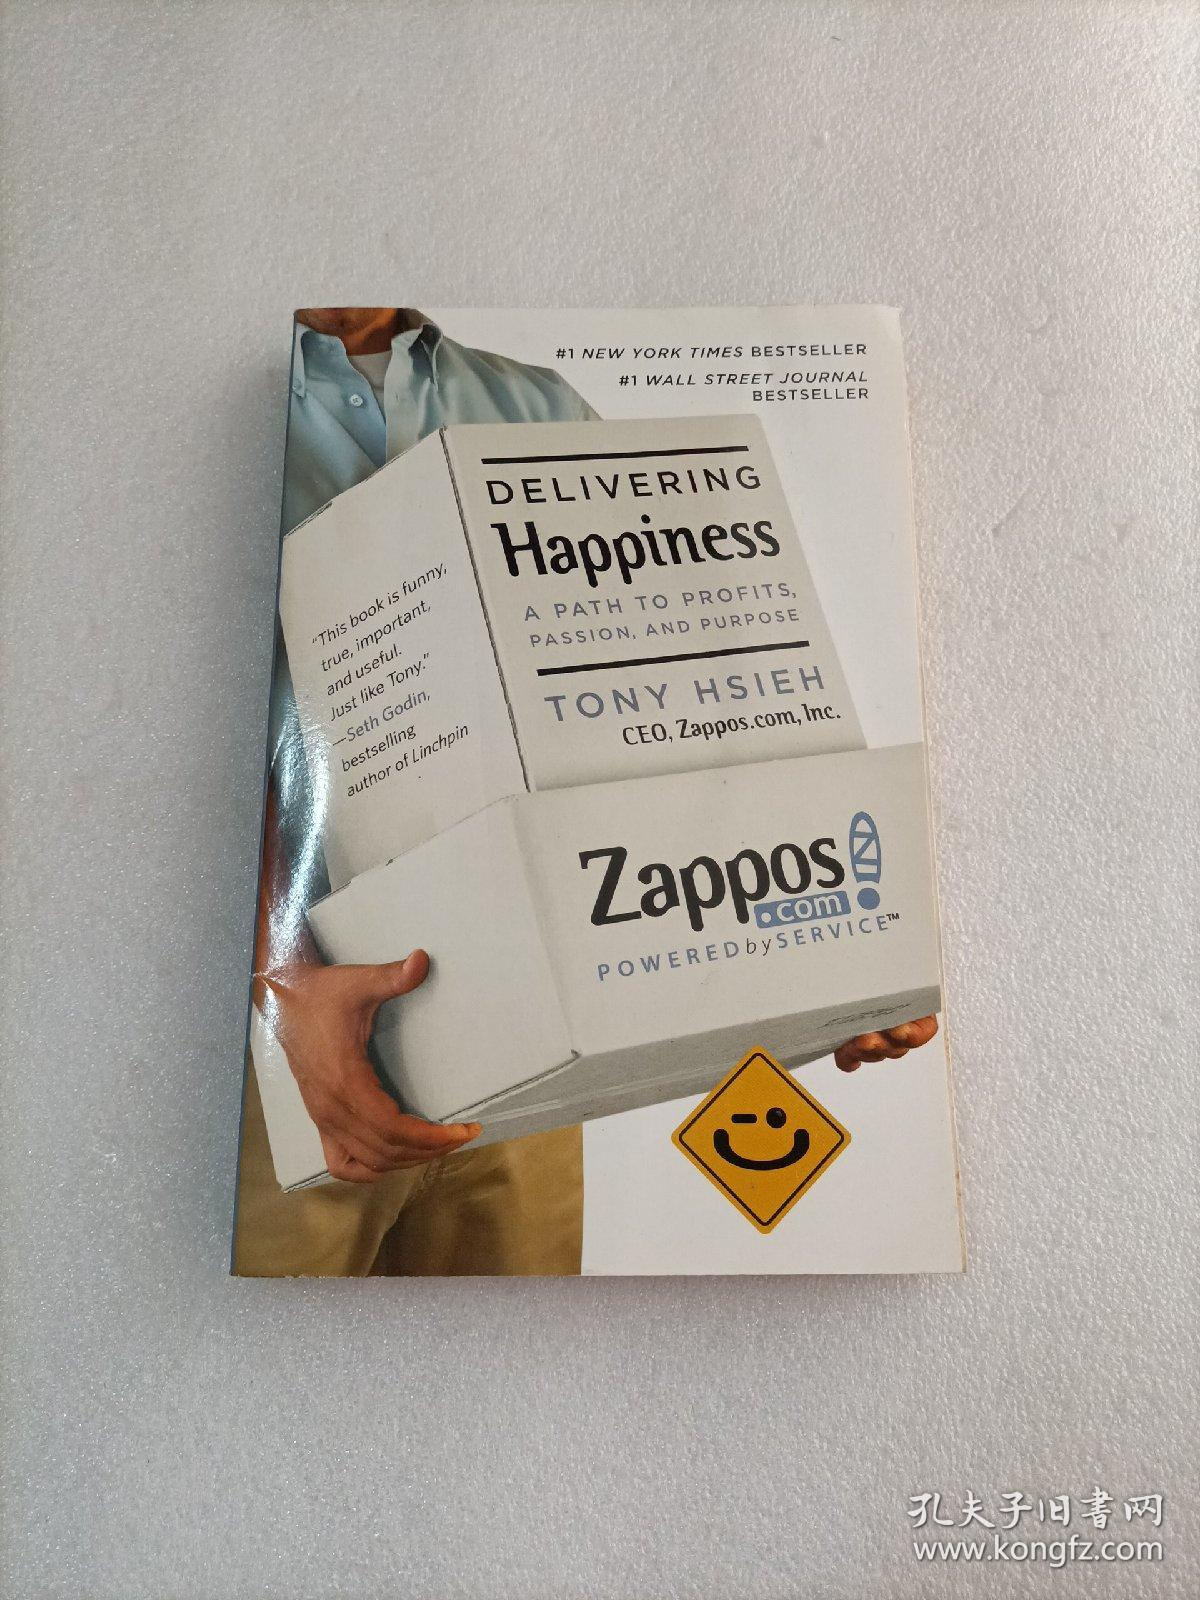 Delivering Happiness: A Path to Profits Passion and Purpose[三双鞋:美捷步总裁谢家华自述]